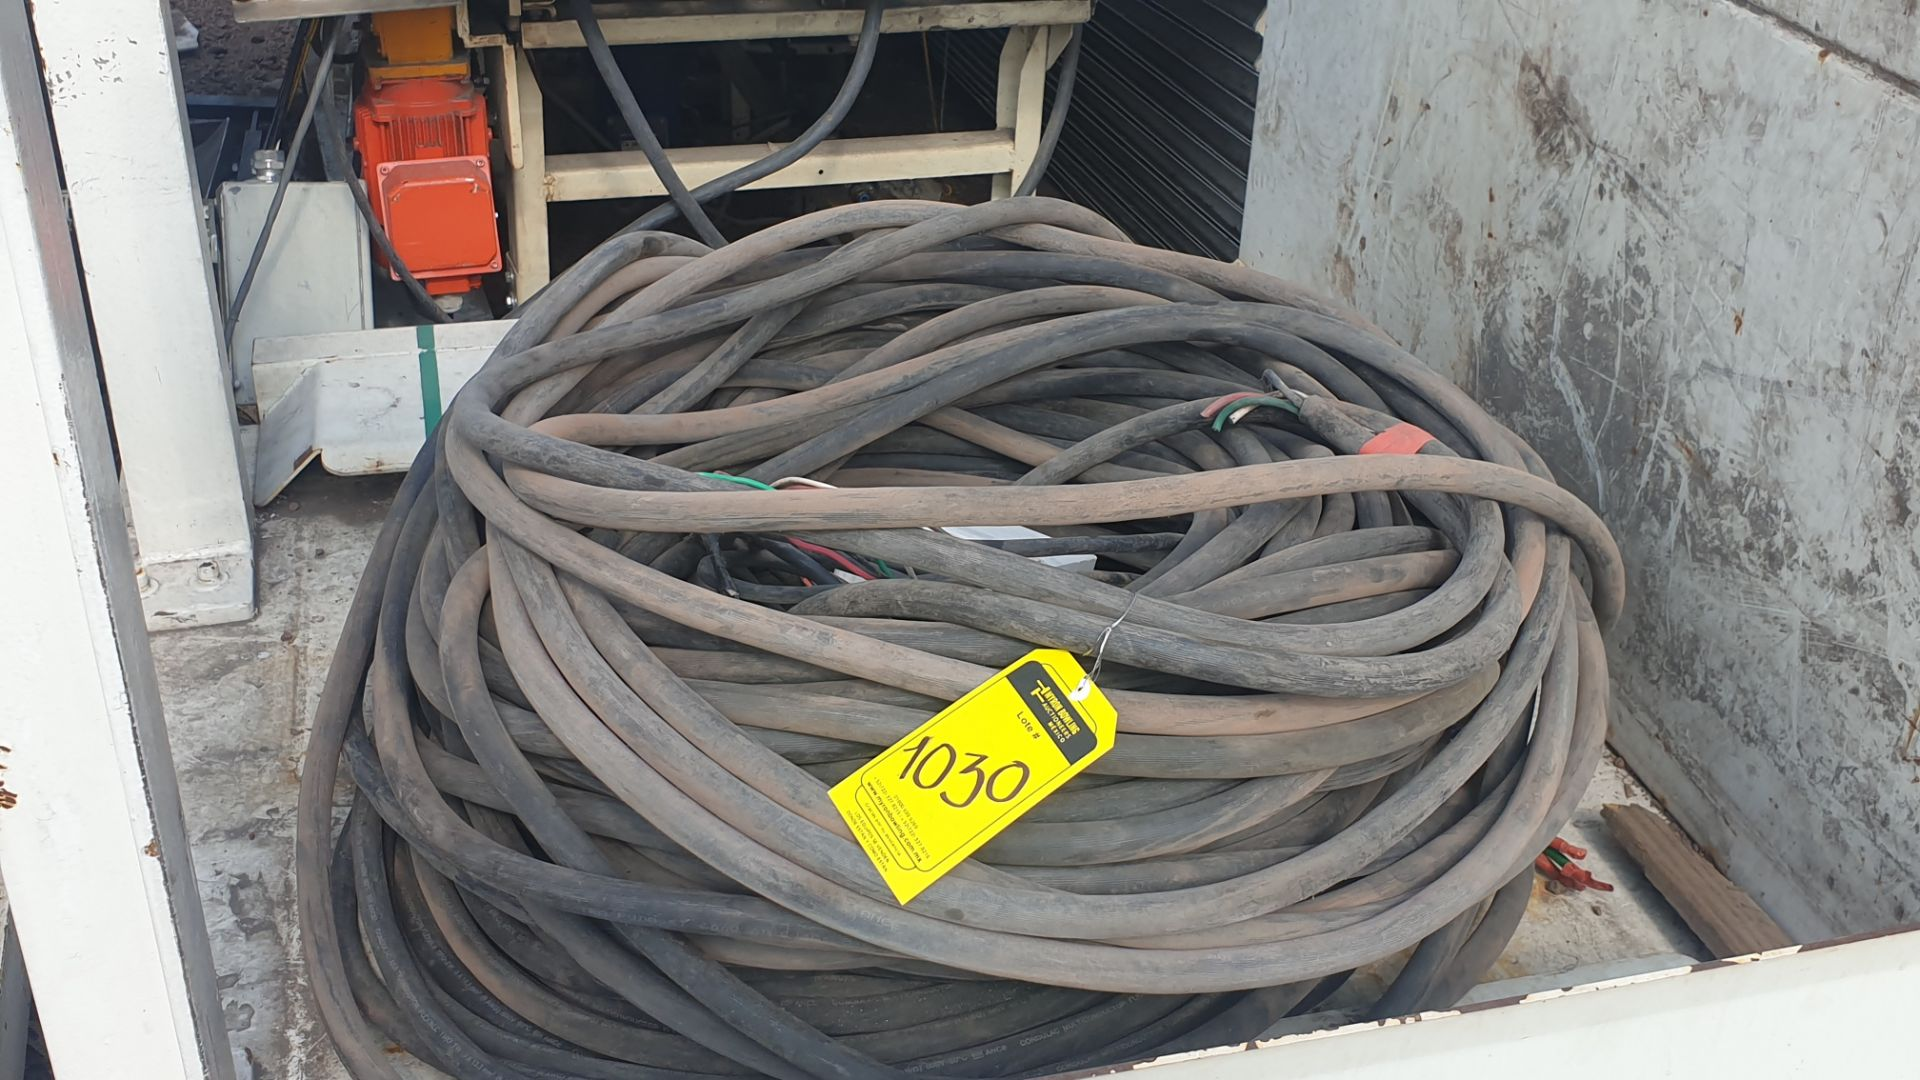 Lot of cable for high tension of 3 lines different gauge 80 mts approximately - Image 4 of 6